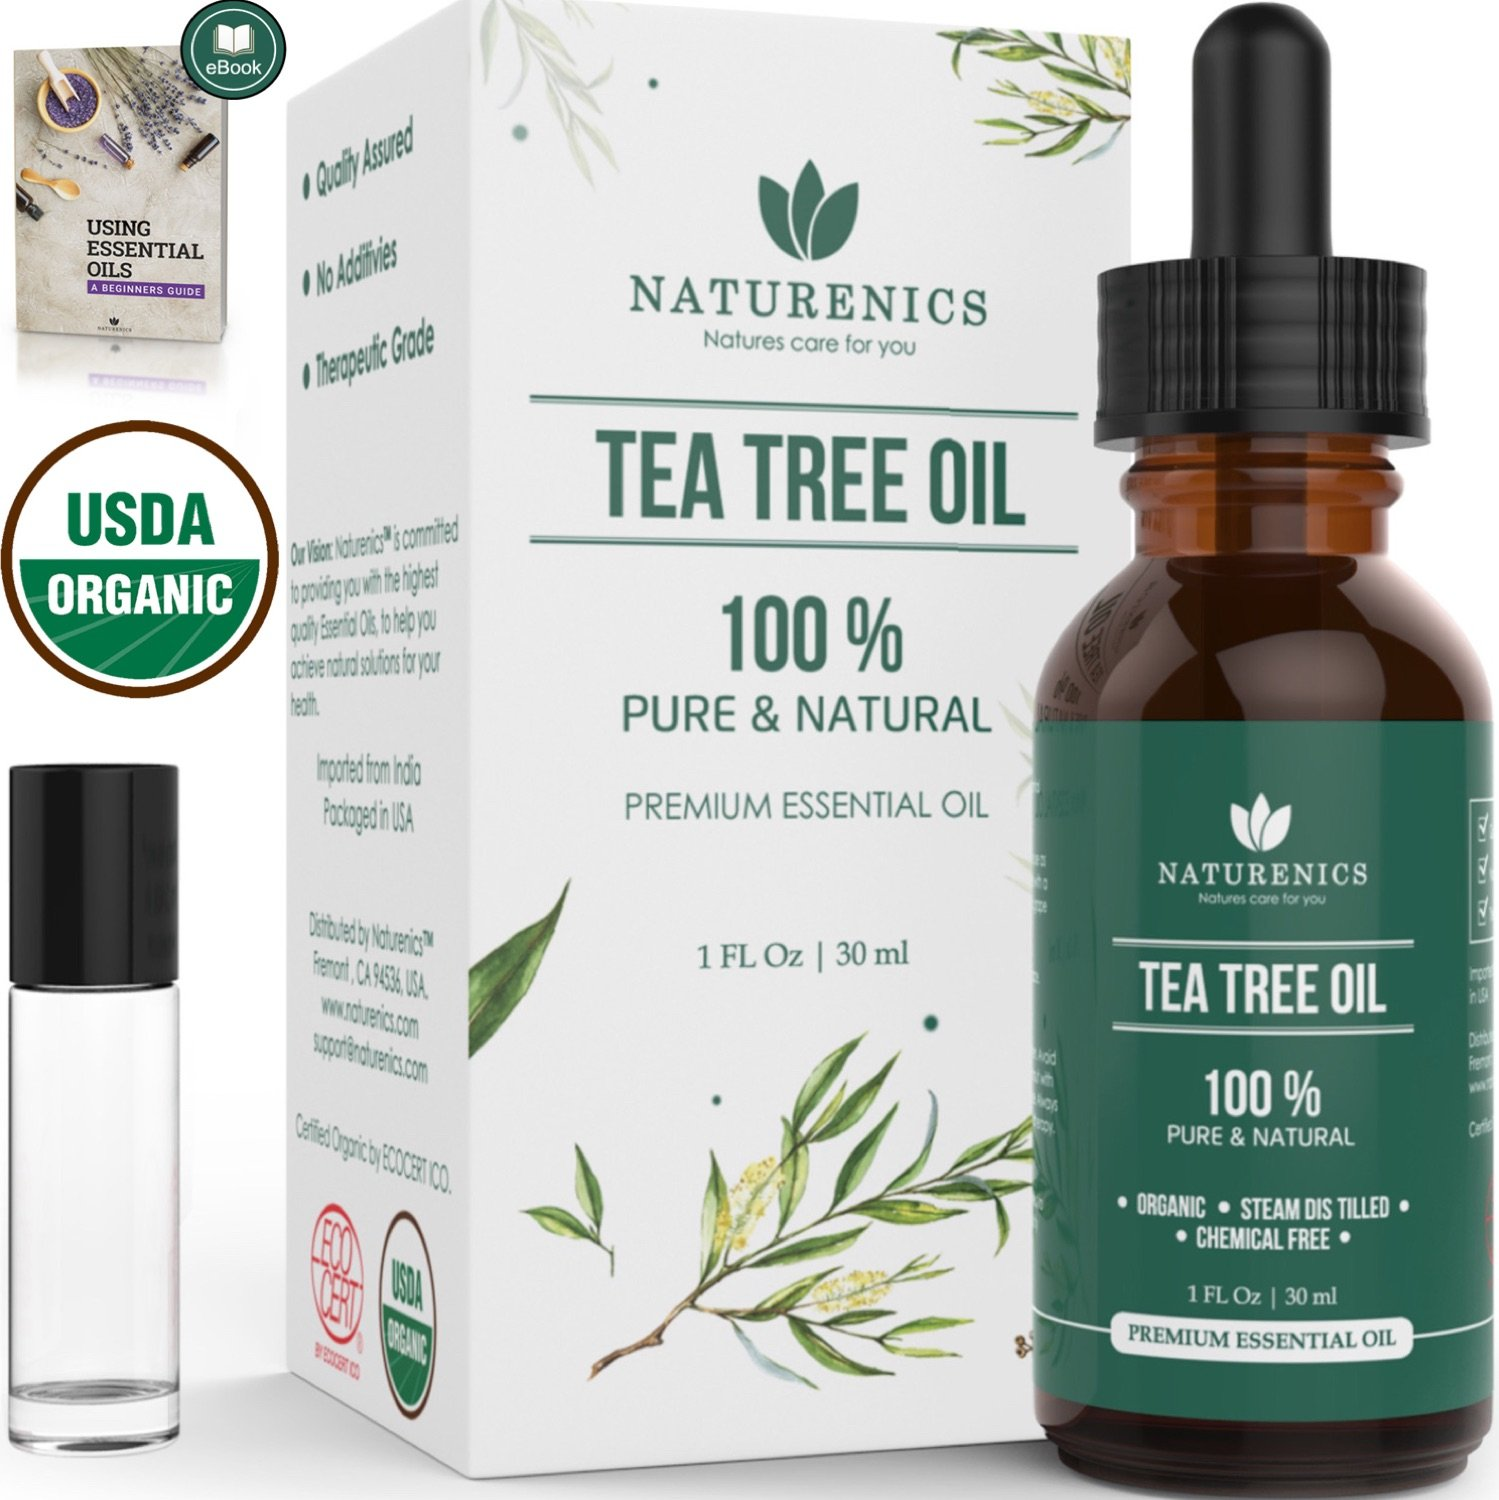 Naturenics Premium 100% Organic Tea Tree Essential Oil -Undiluted Pure USDA Certified Melaleuca Alternifolia Therapeutic Grade - For Toenail Fungus & Acne Treatment - Roll On & eBook by Naturenics